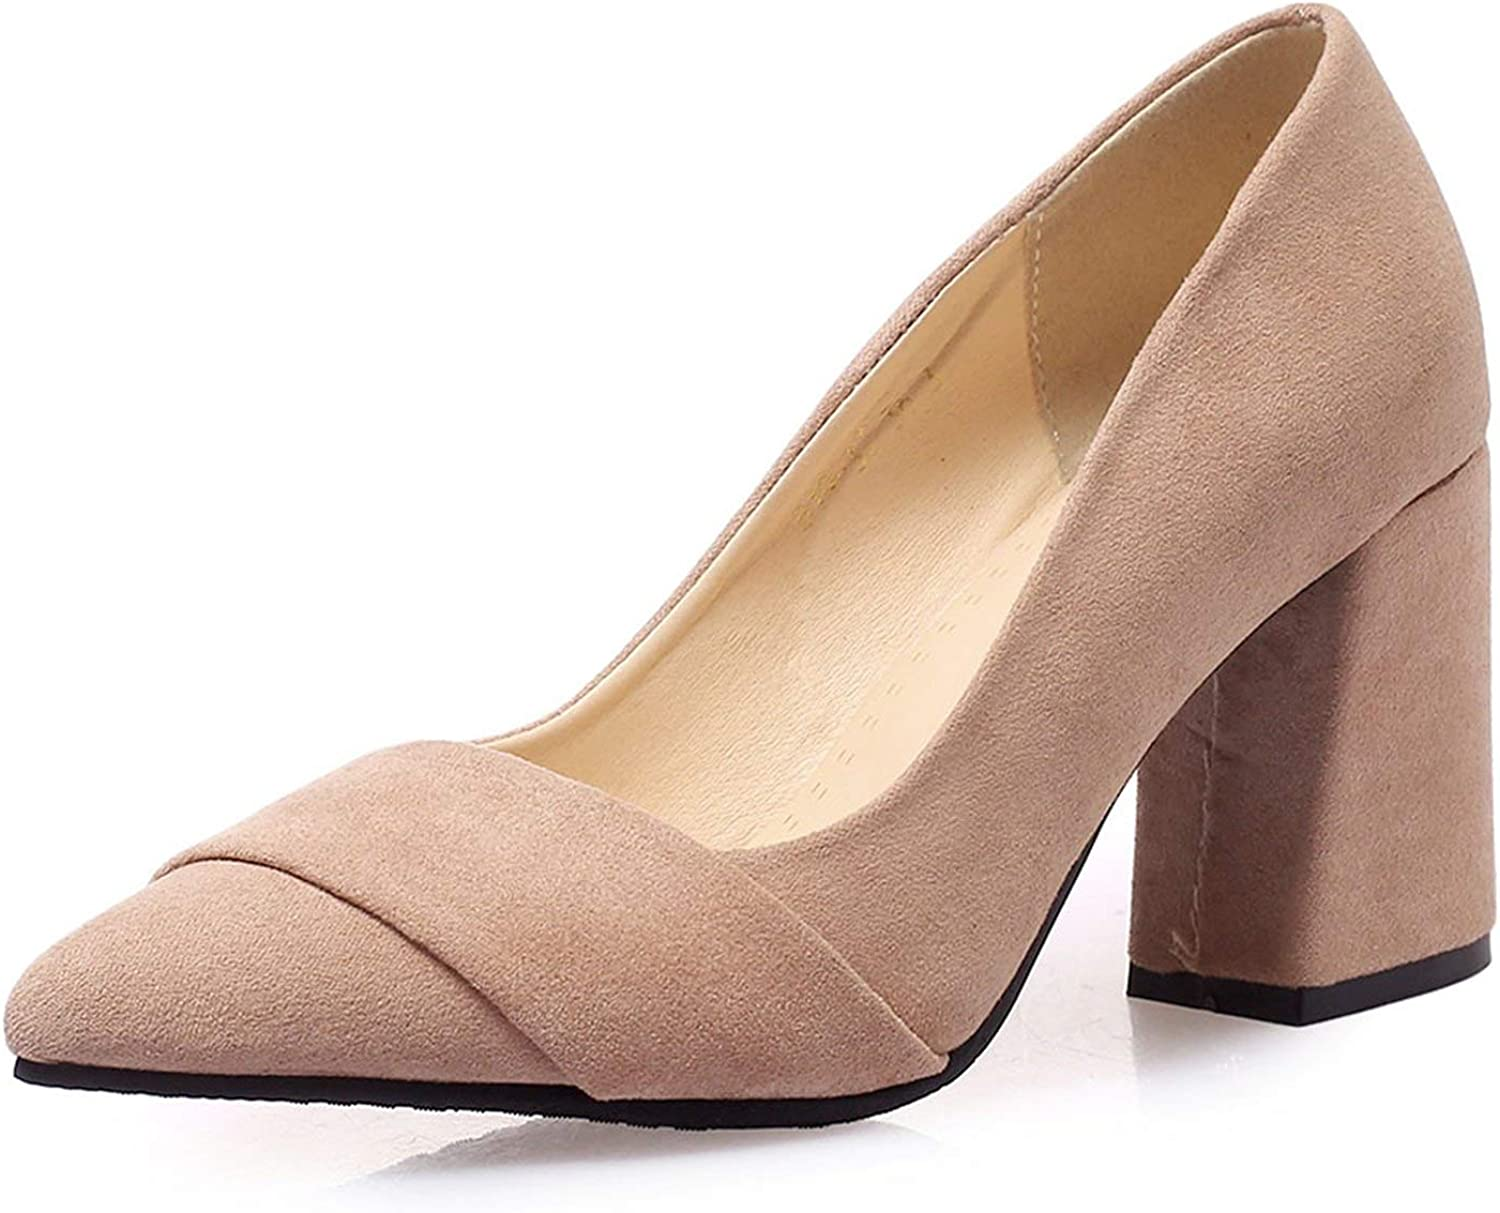 FINDYOU Suede shoes Women Pumps Pointed Toe Thick Heels Temperament Elegant High Heels